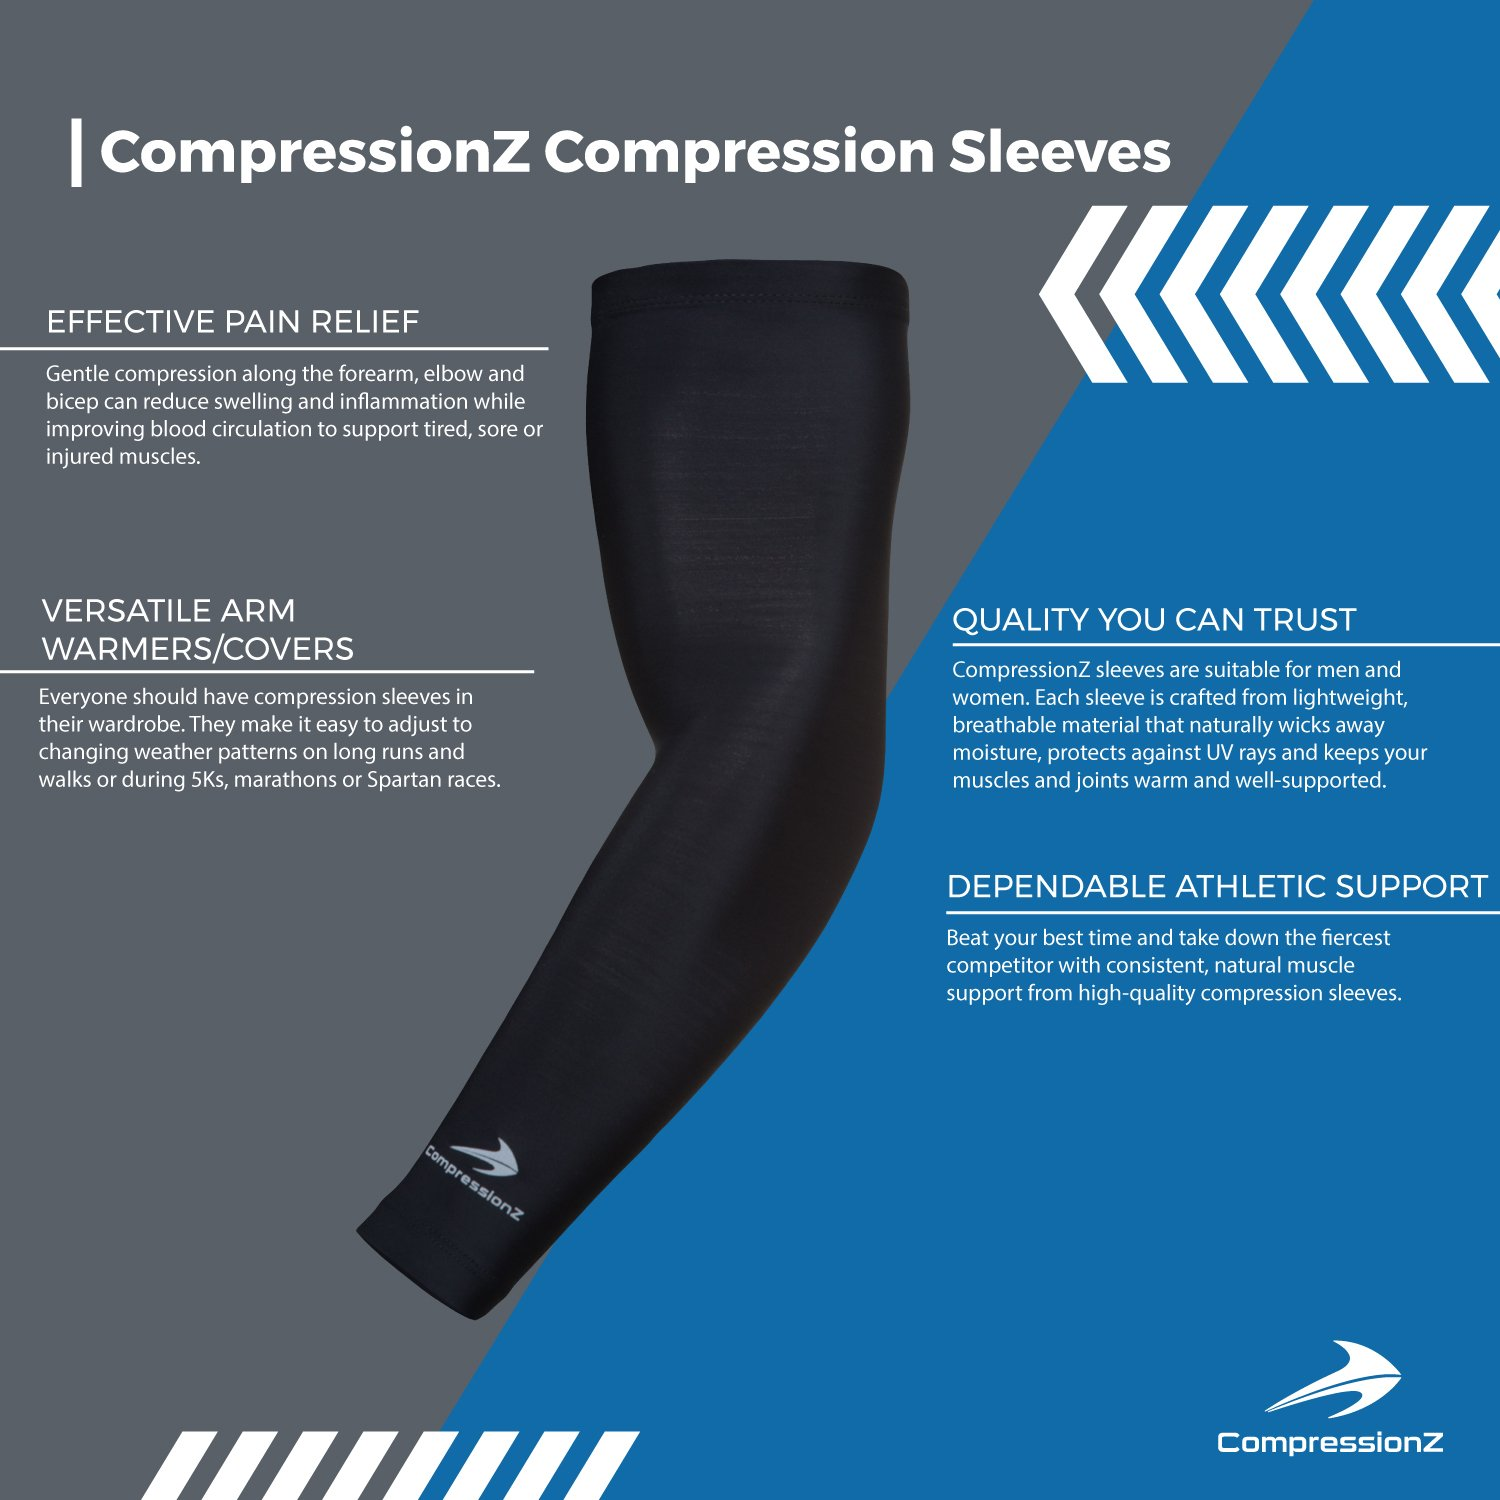 a306149a77 Amazon.com: CompressionZ Arm Sleeve (Pair) - Sports Compression Sleeves for  Baseball, Basketball, Football, Cycling, Golf - Elbow Brace for Arthritis,  ...